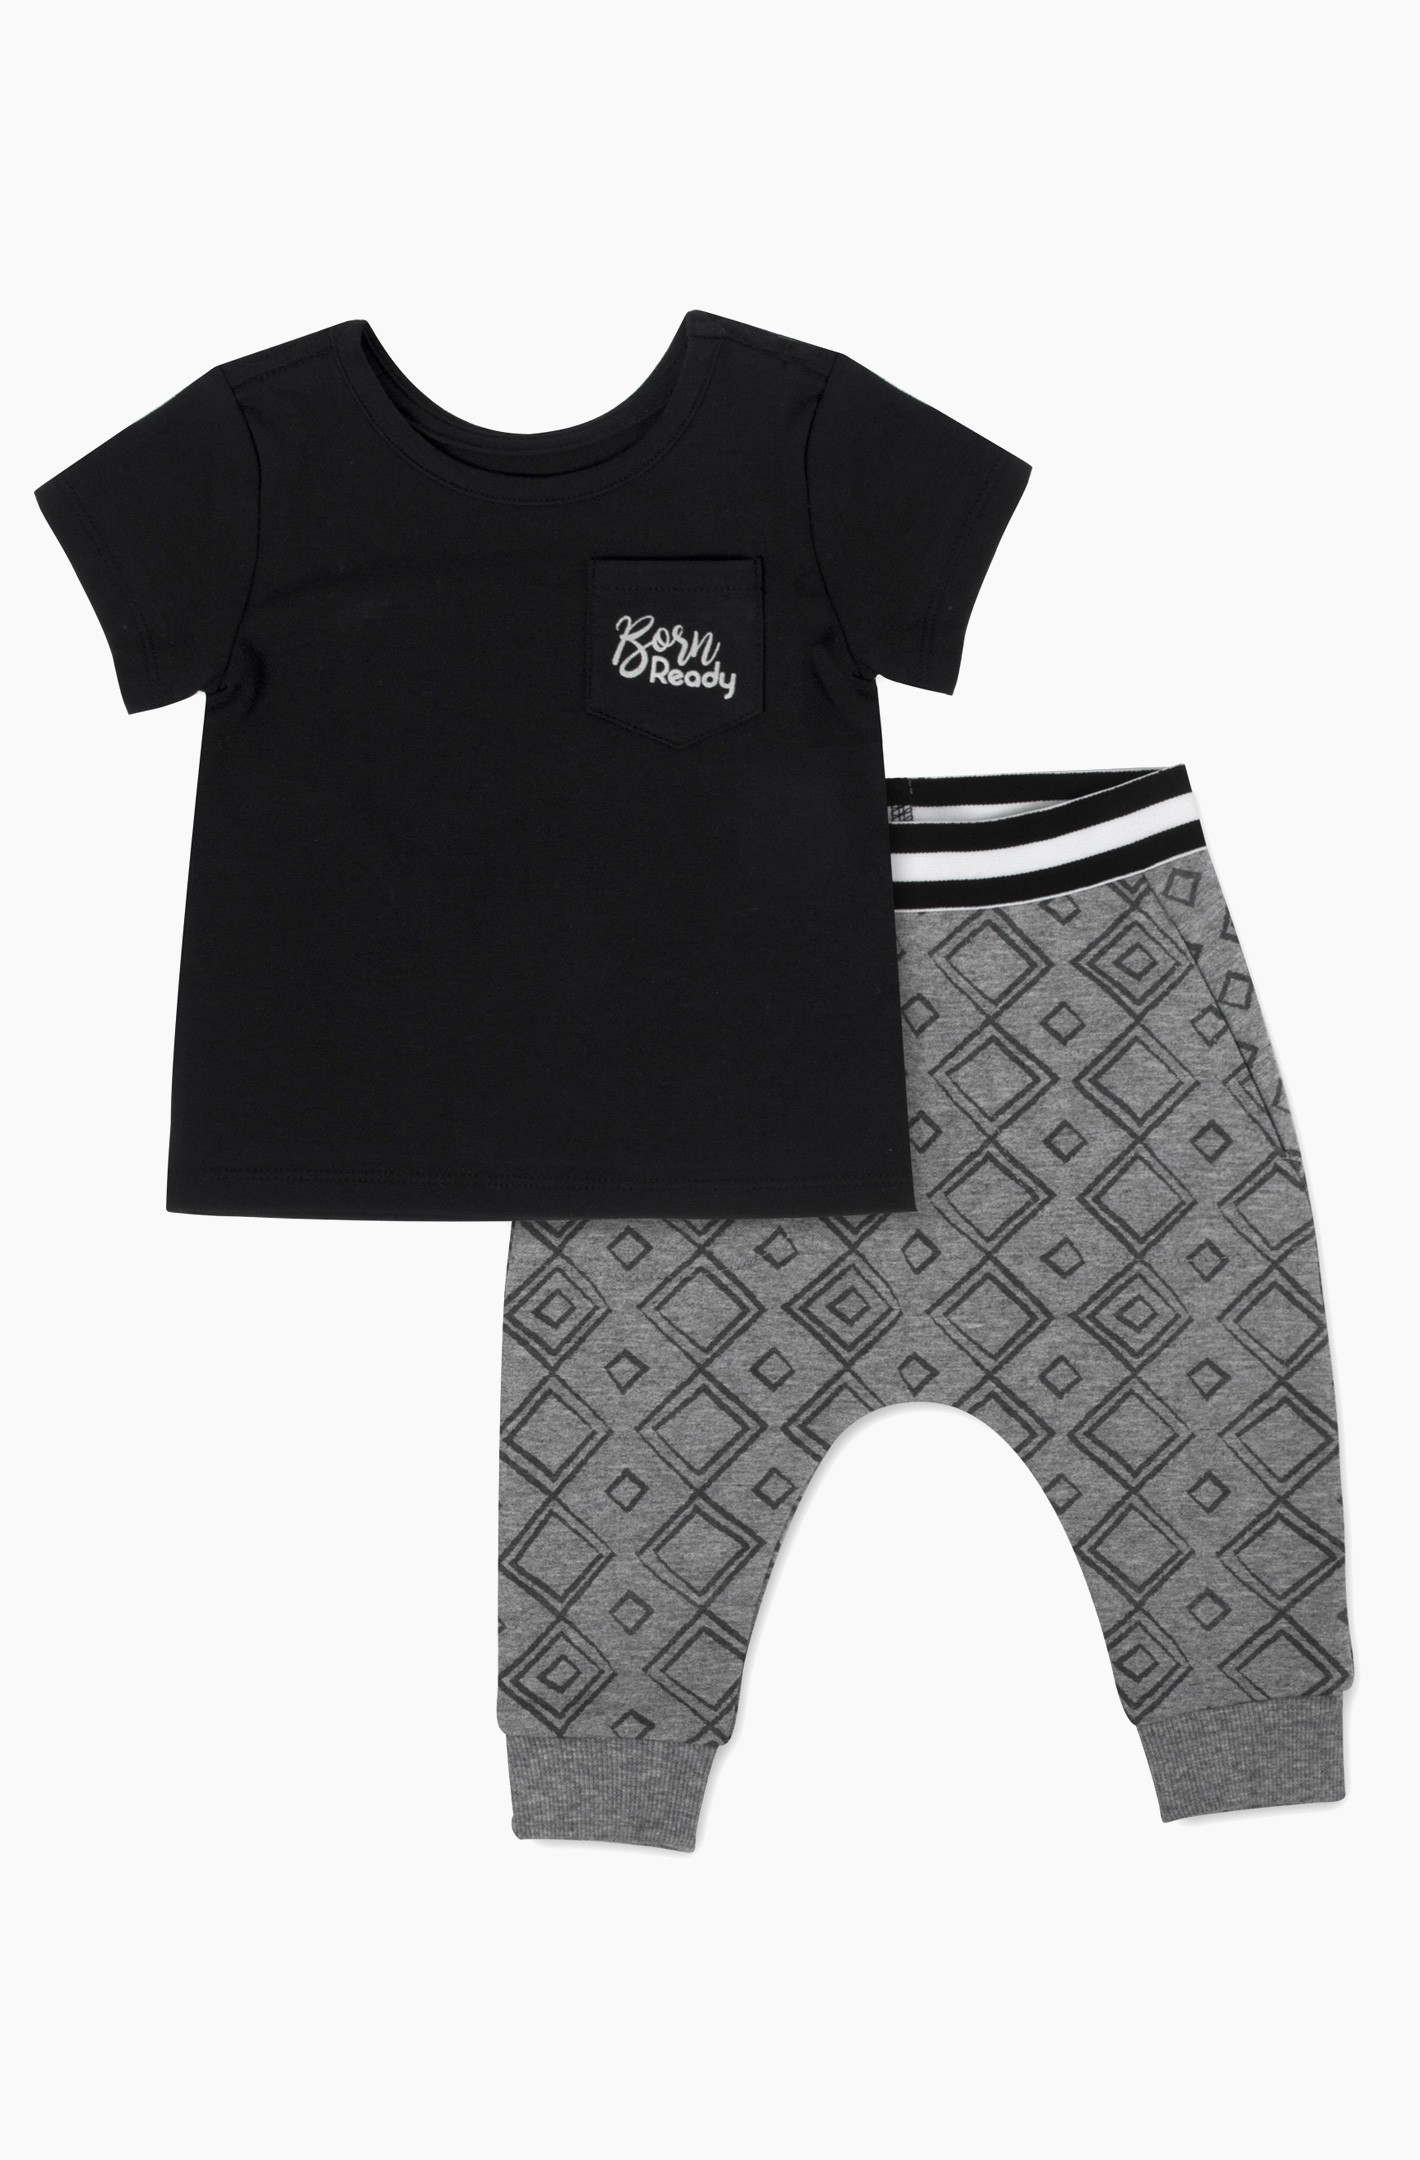 Geometric Print Pants with Born Ready Tee Set